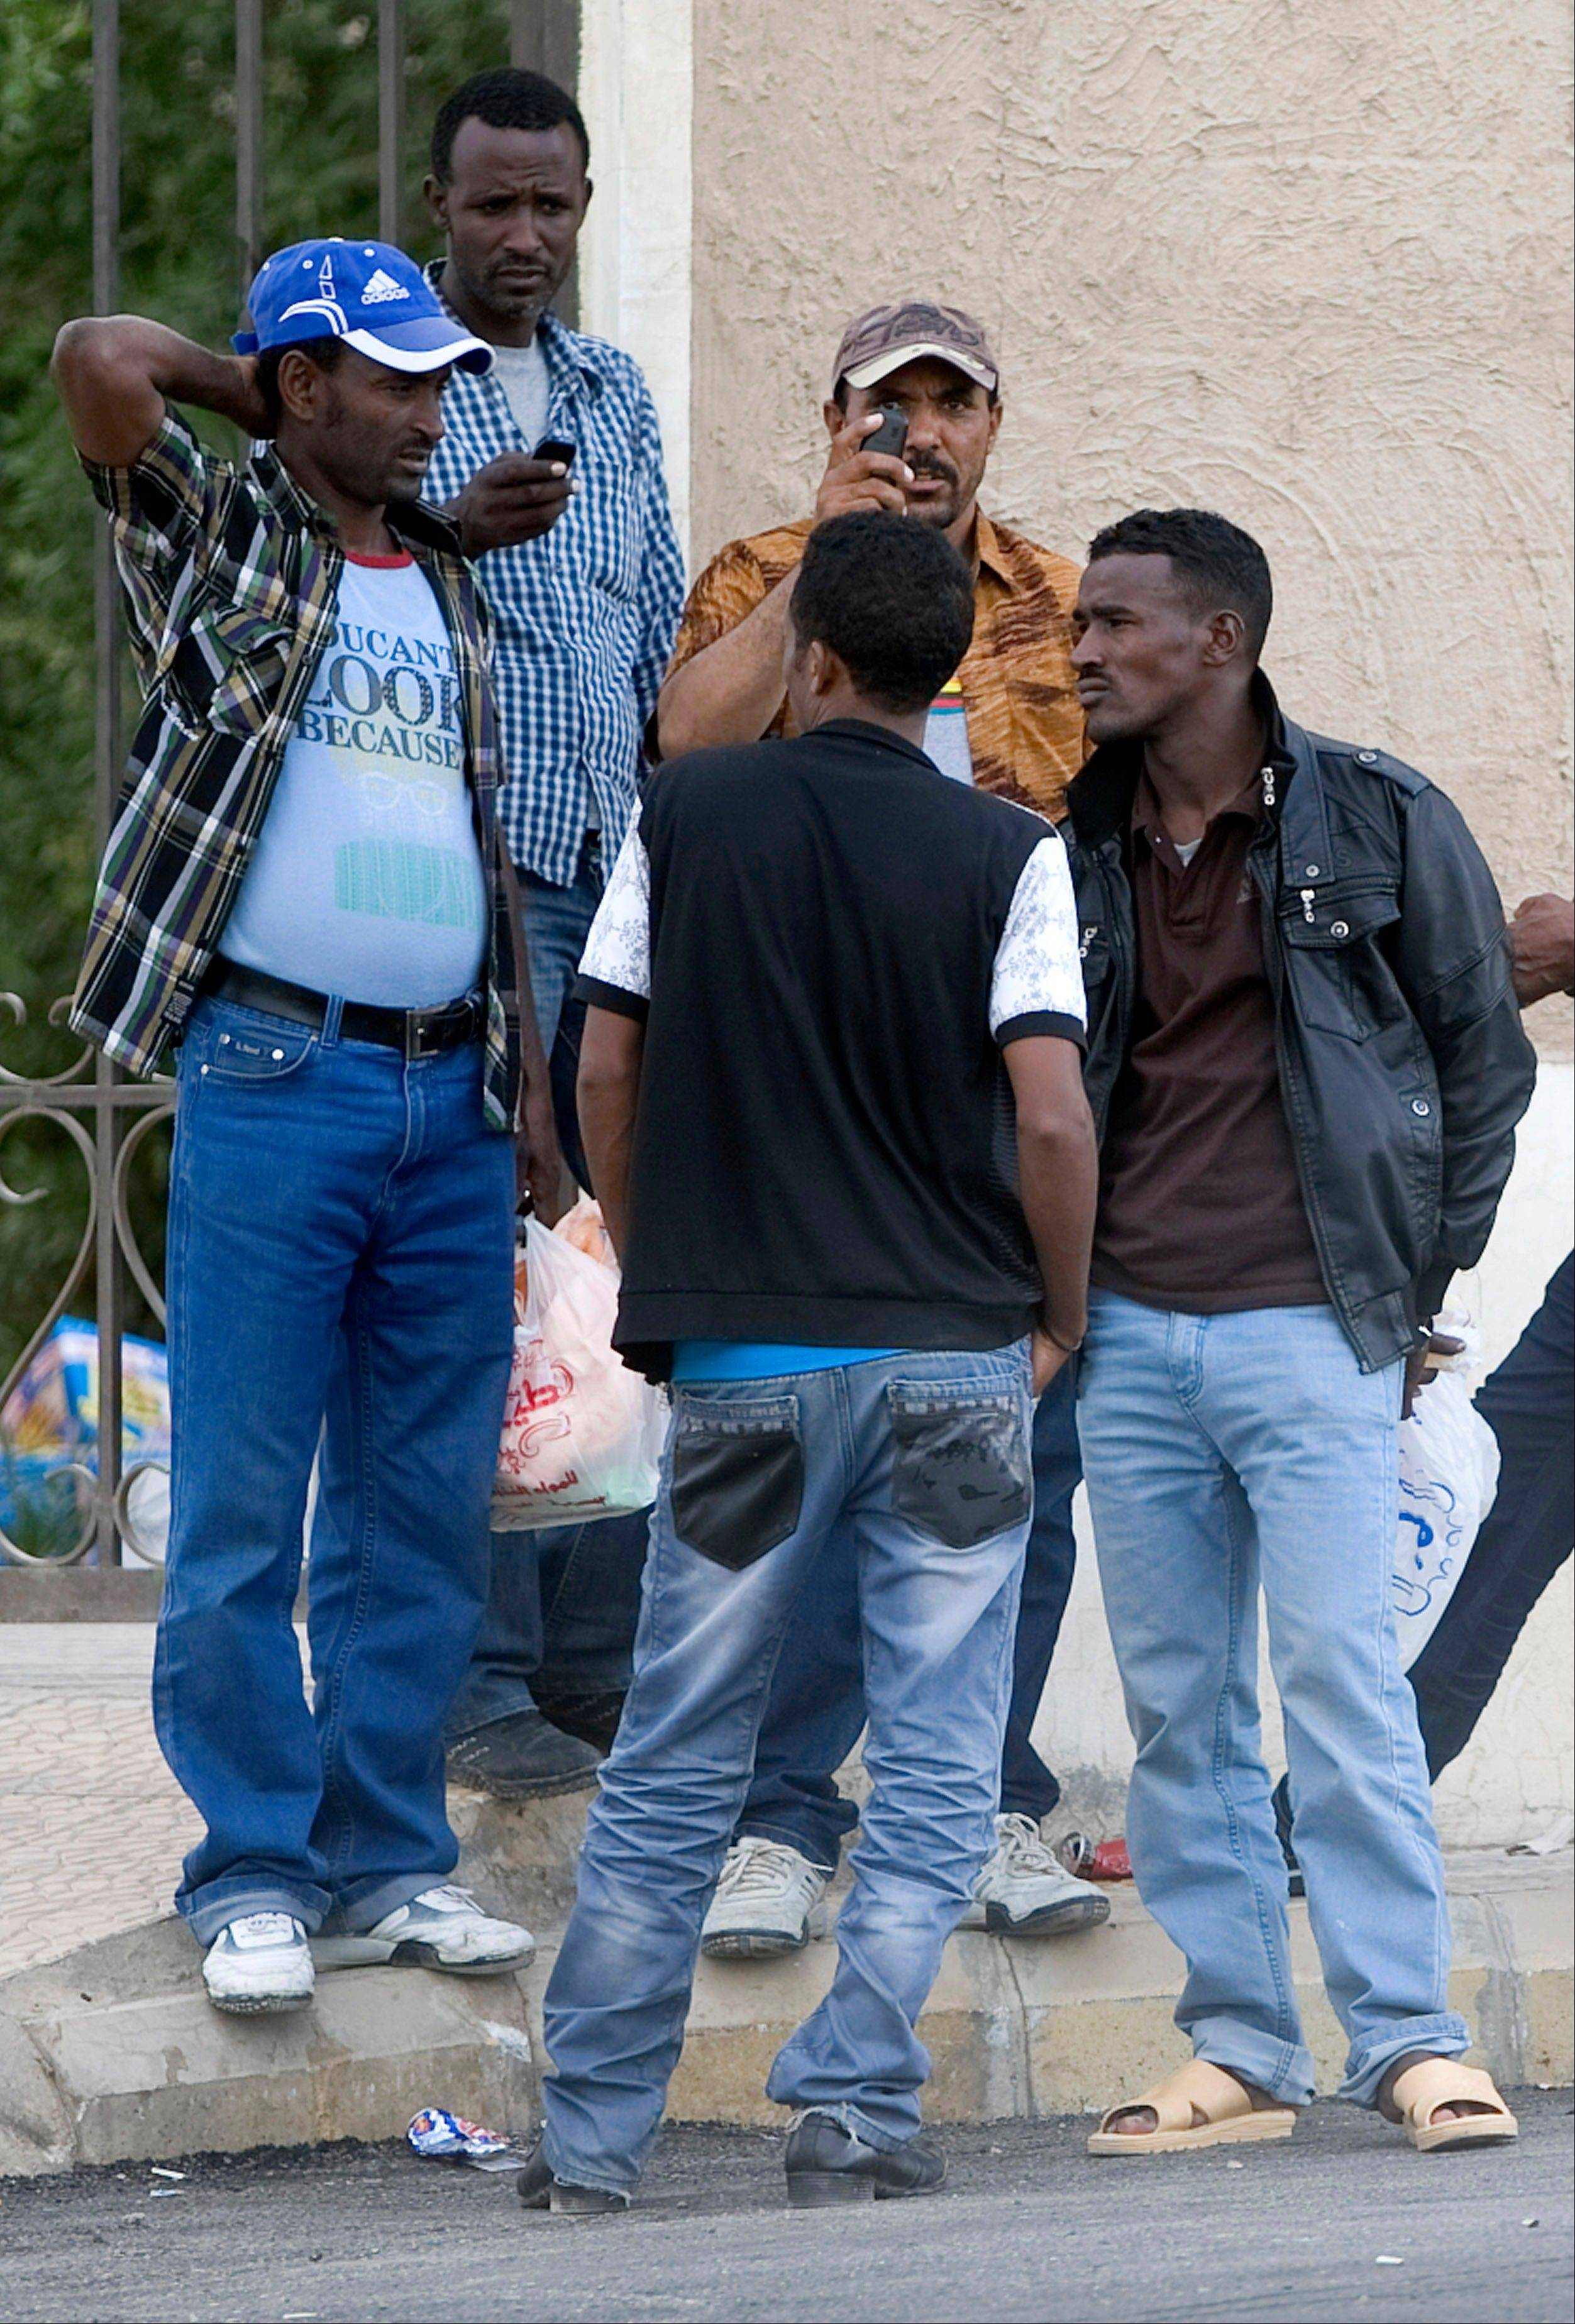 Ethiopians gather as they wait to be repatriated in Saudi Arabia. The country�s crackdown on migrant workers, which began Nov. 4, targets the more than 9 million foreign laborers.